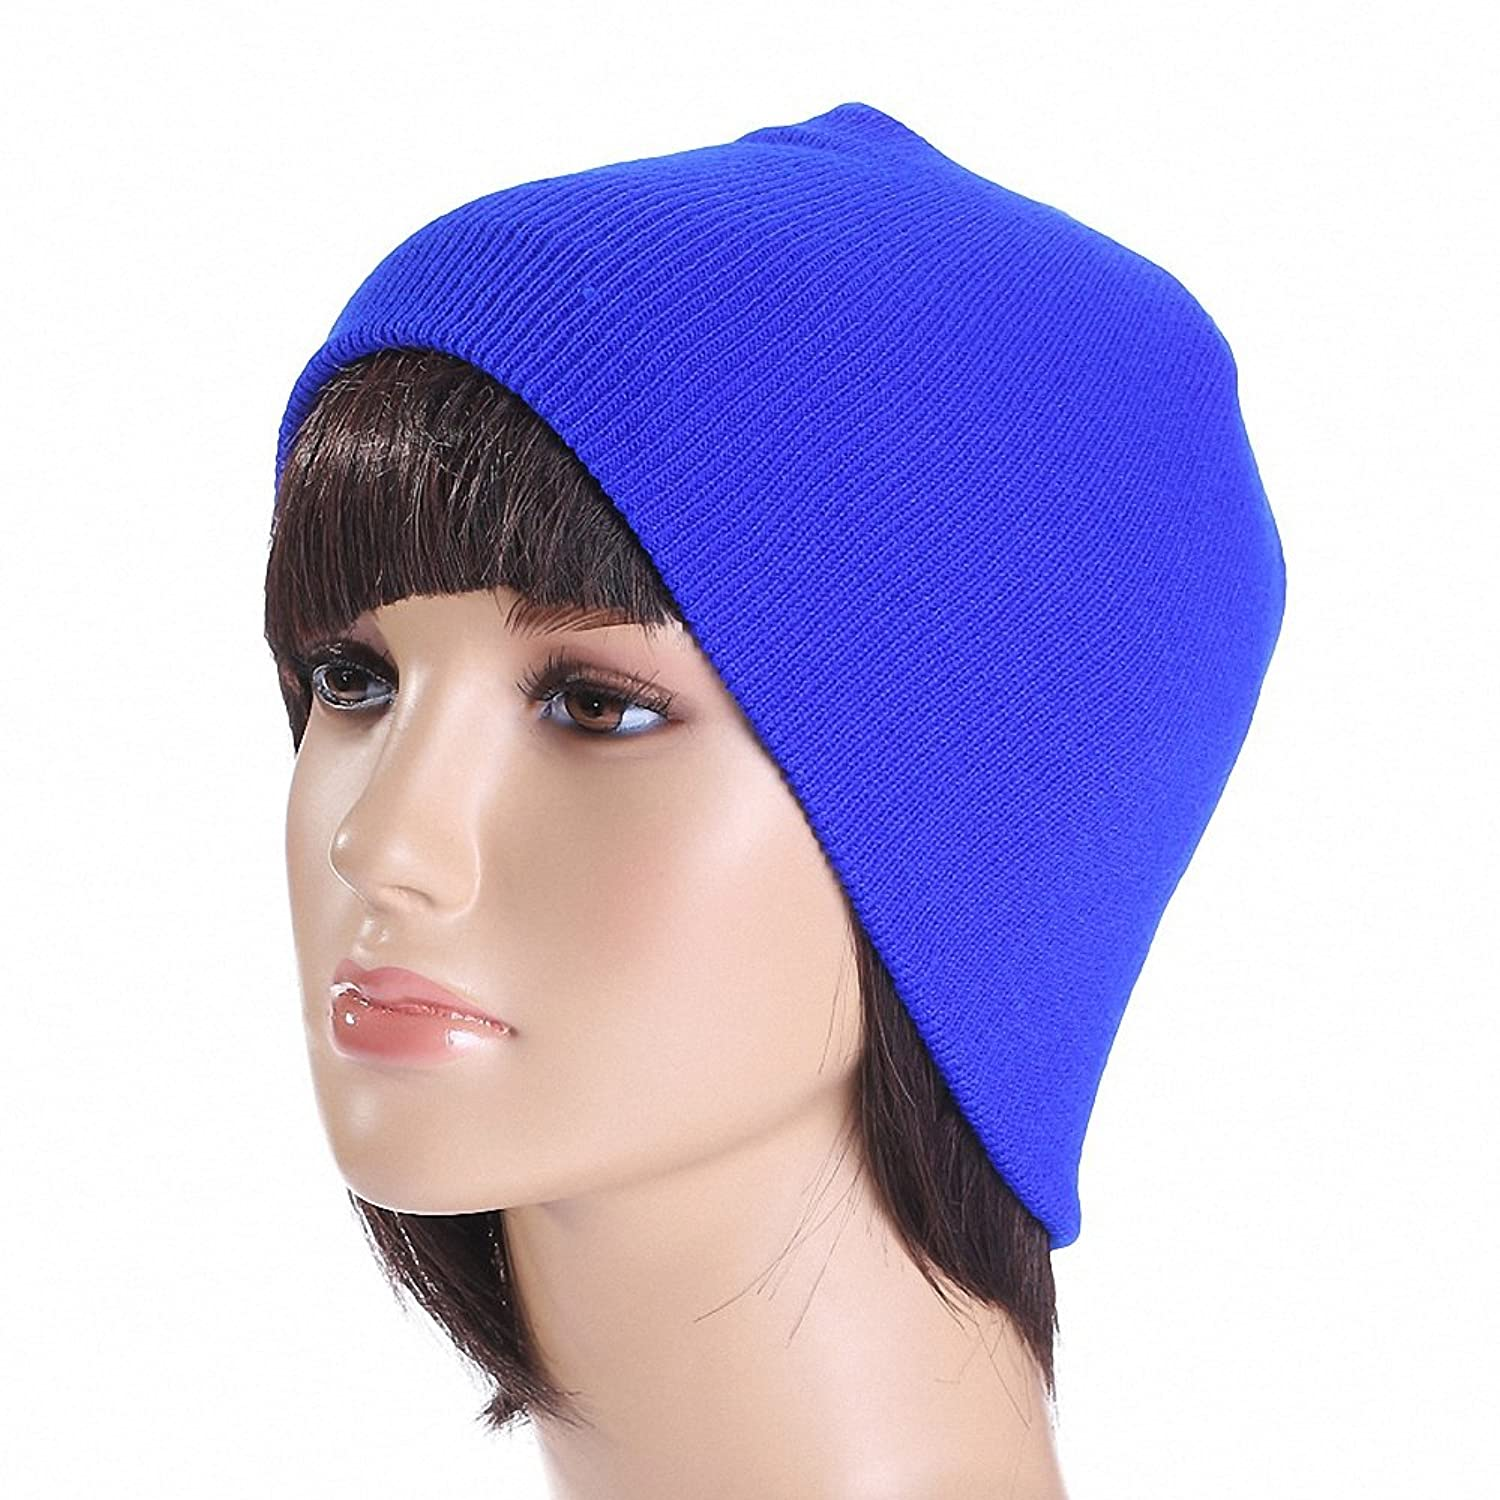 Maoko Winter Daily Beanie Hats / Knit Skull Cap for Cold Weather (6 colors)